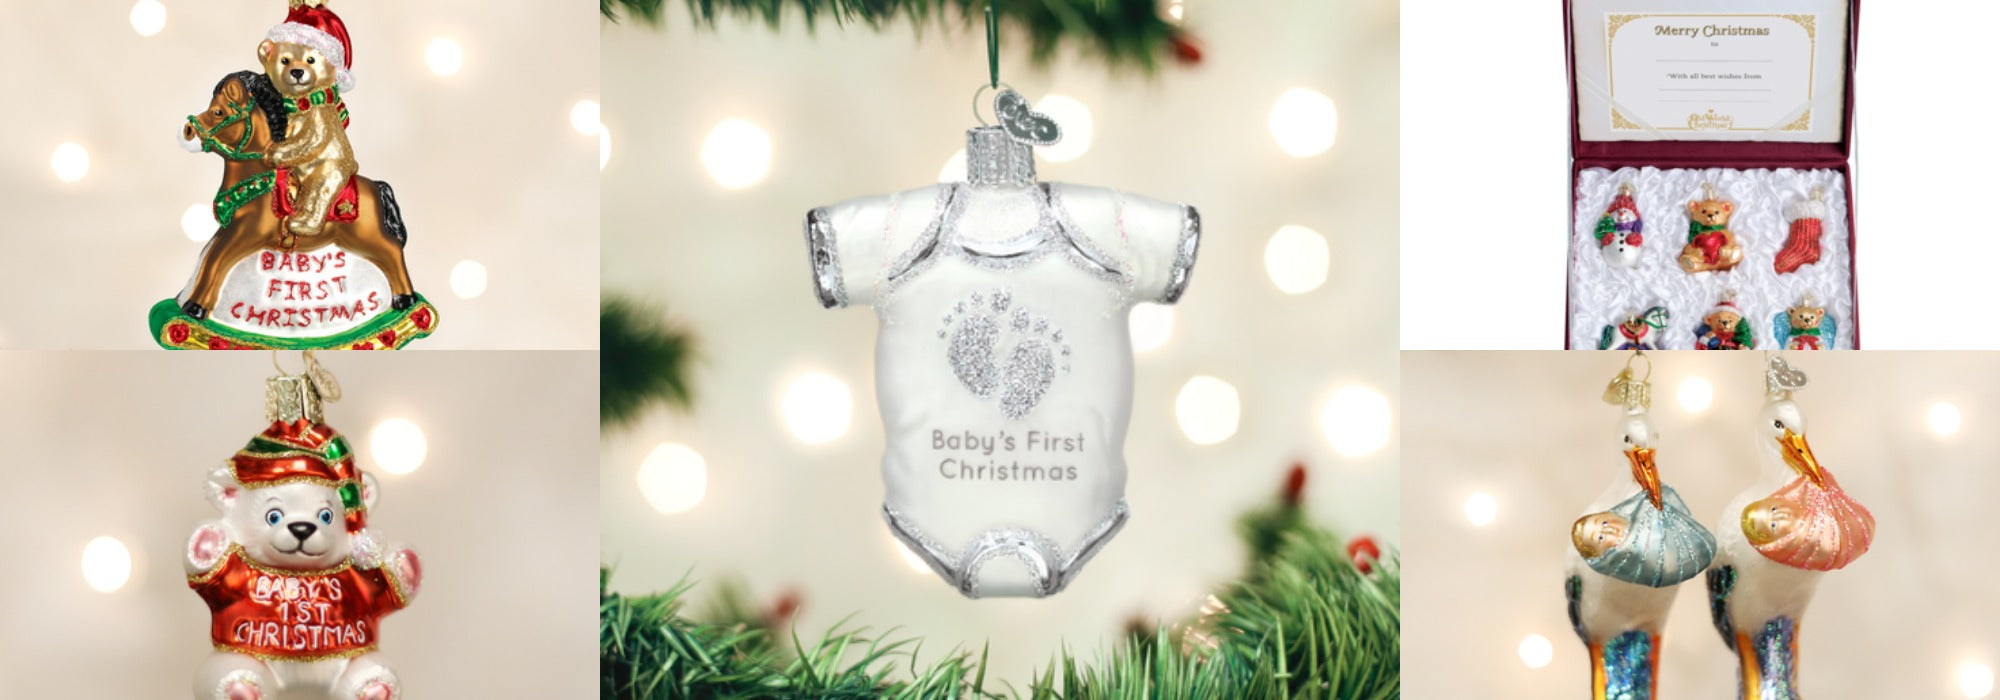 Our 5 Favorite Baby s First Christmas Ornaments – Old World Christmas 8ebf796ce